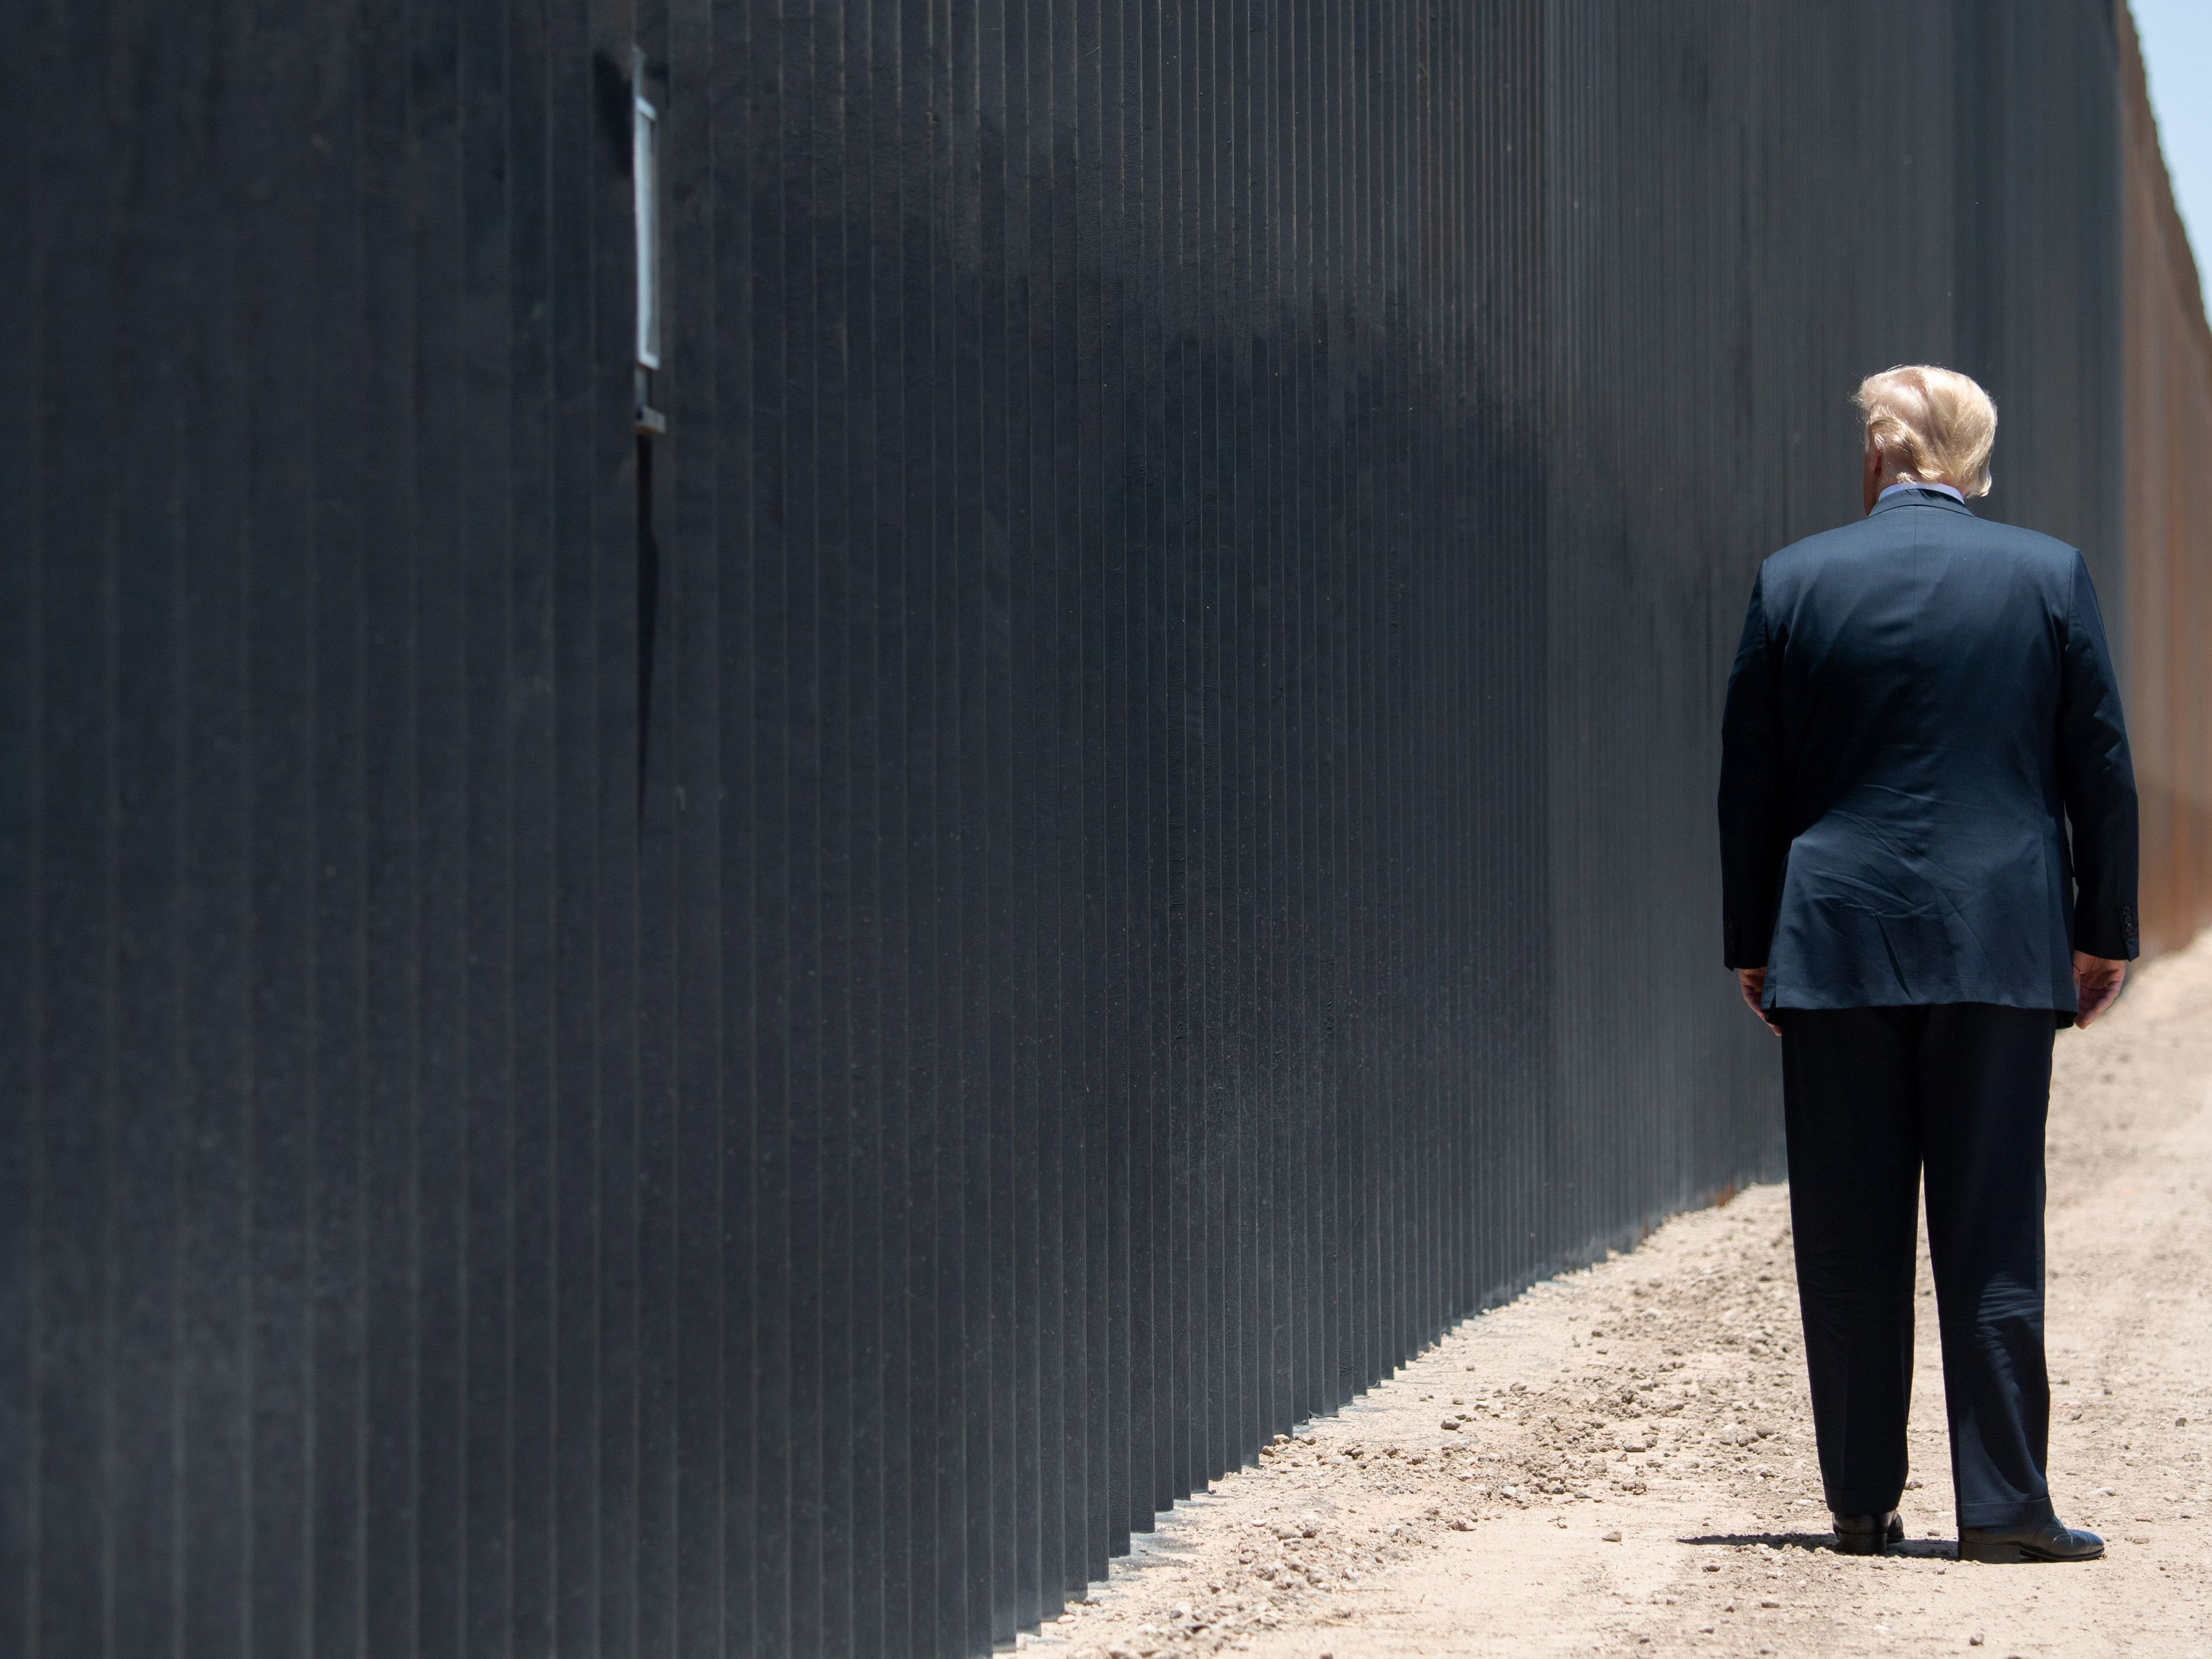 Donald Trump heads to Texas border in final days to showcase wall